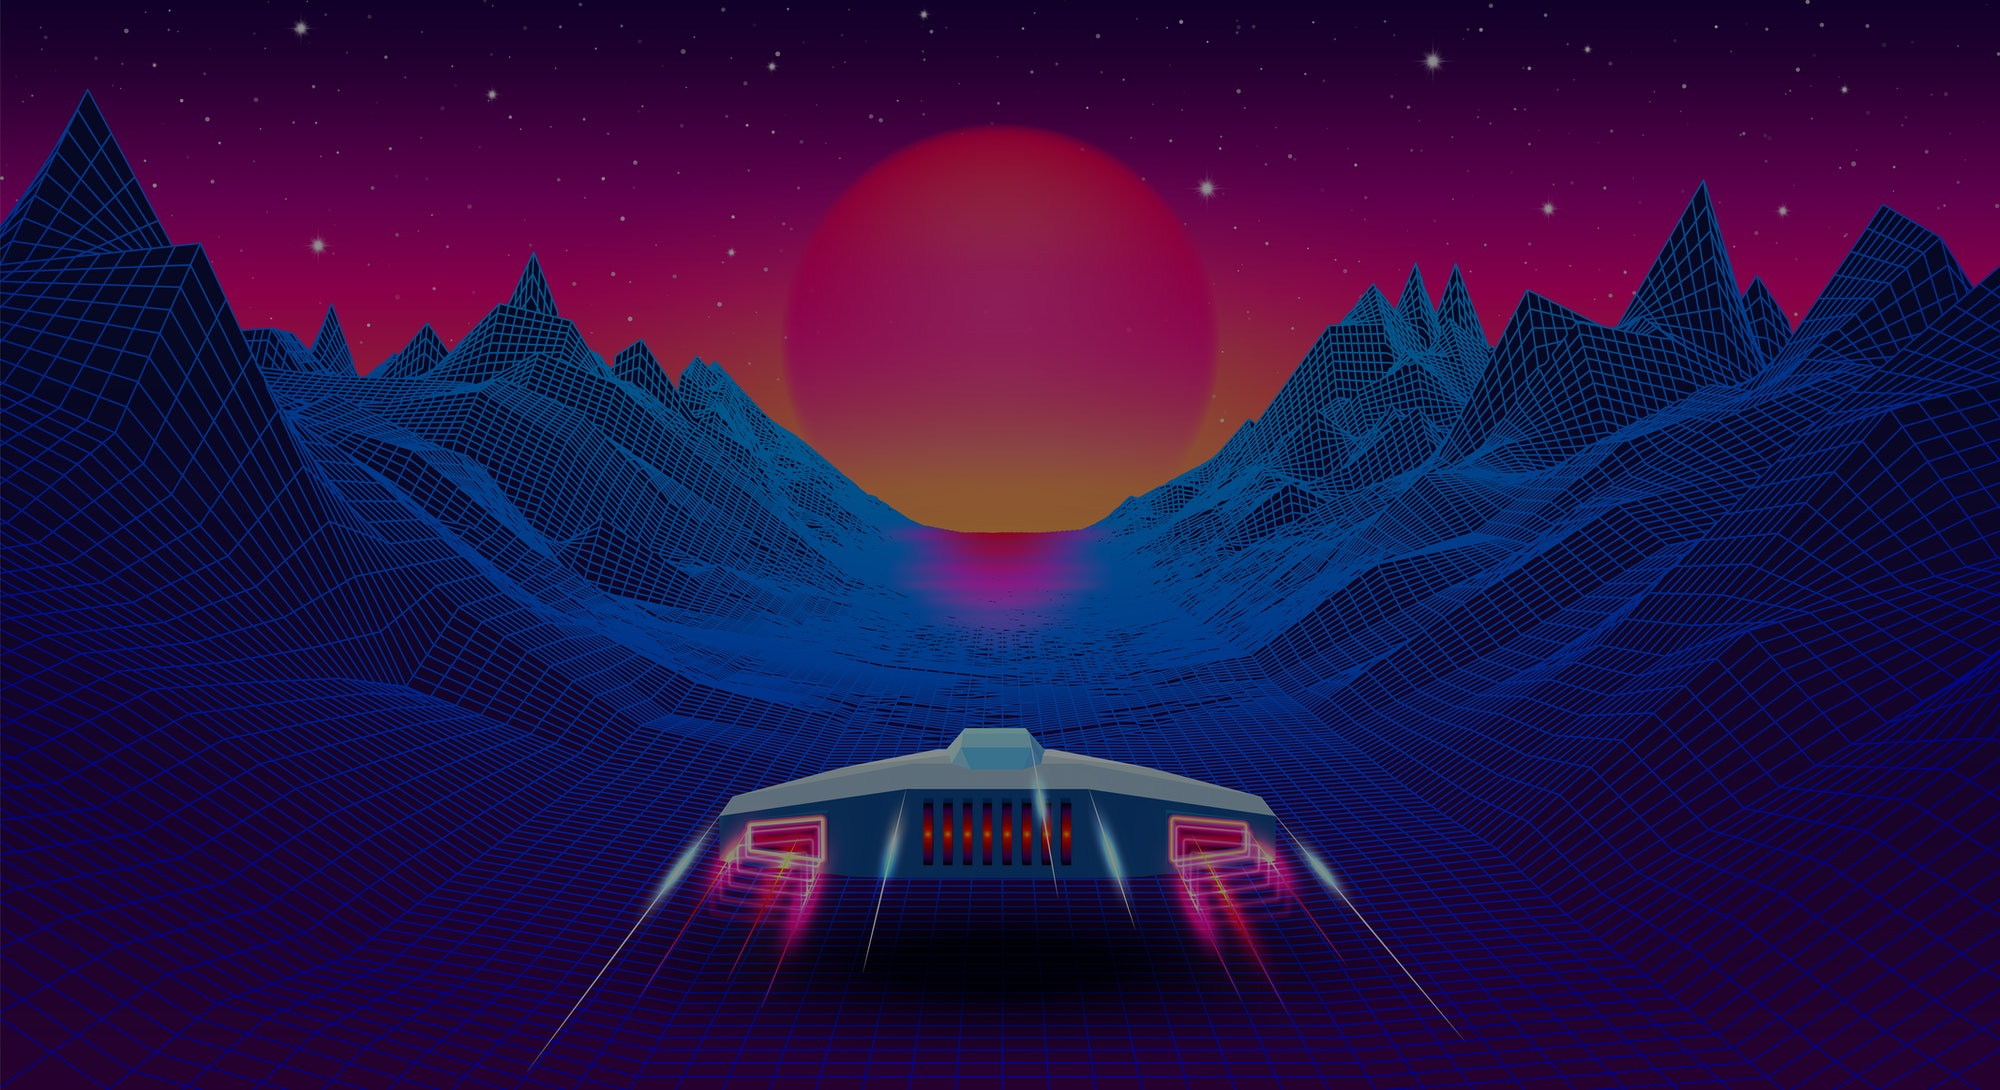 Arcade space ship flying to the sun in blue corridor or canyon landscape with 3D mountains, 80s style synthwave or retrowave illustration